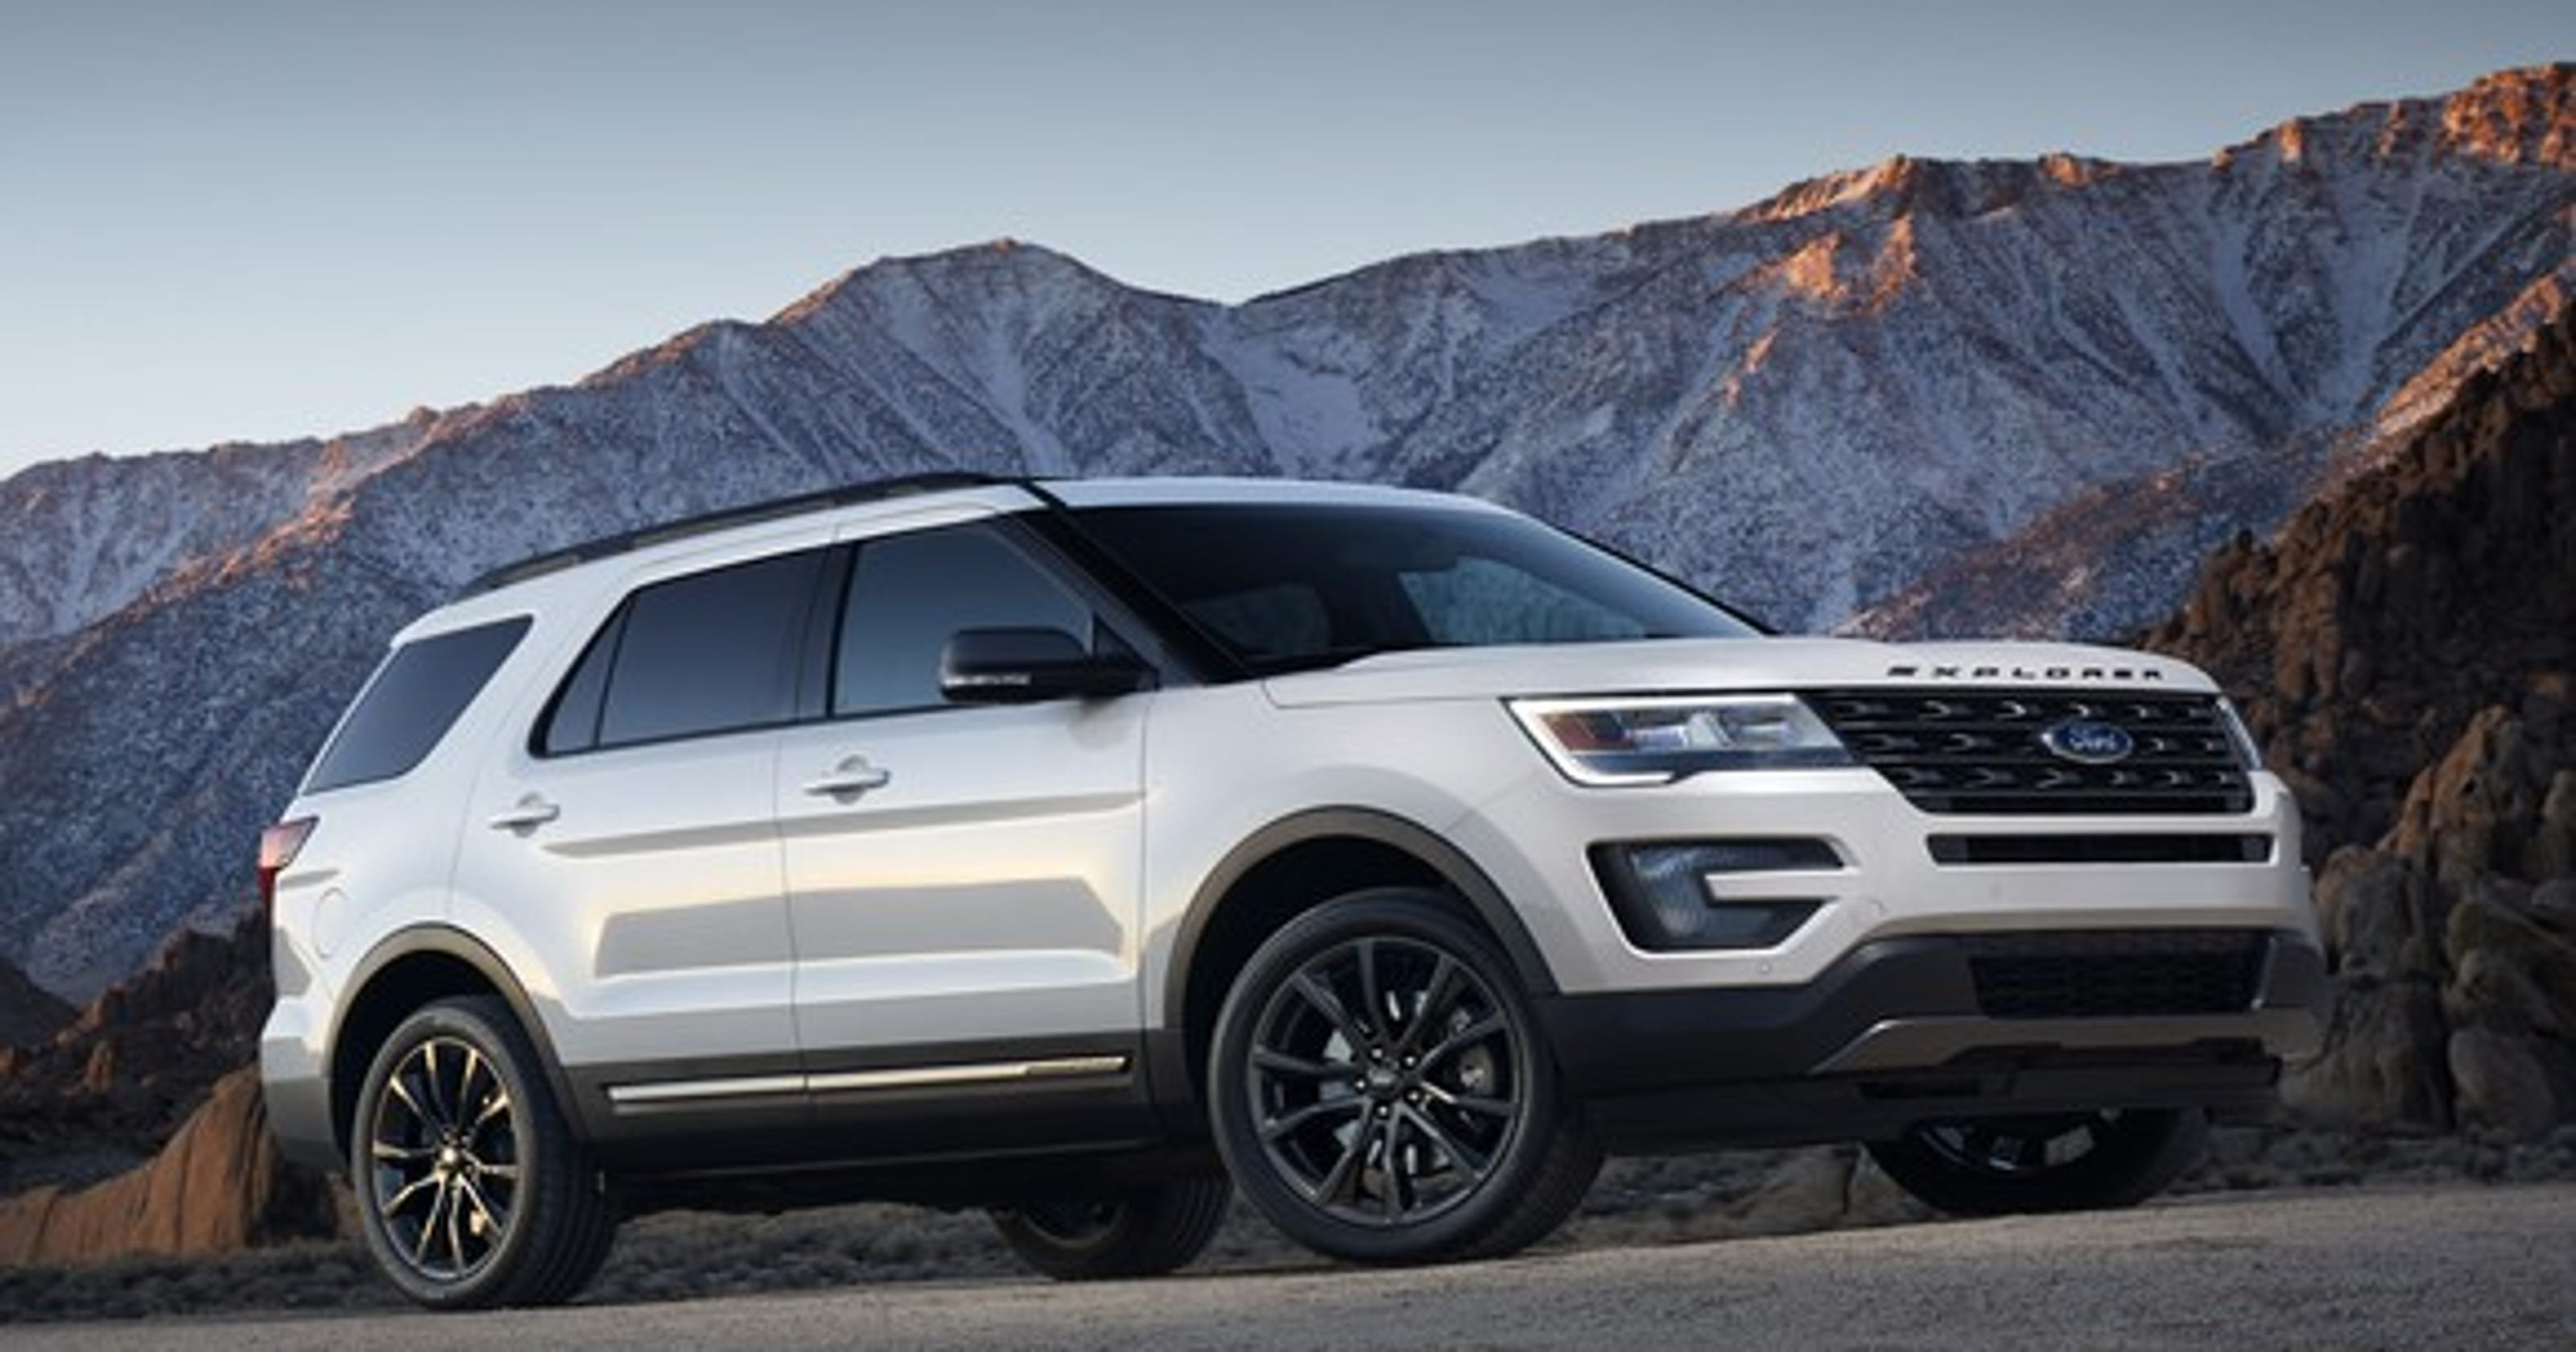 Feds Investigate Ford Explorer Suv After Owners Say It S Making Them Sick